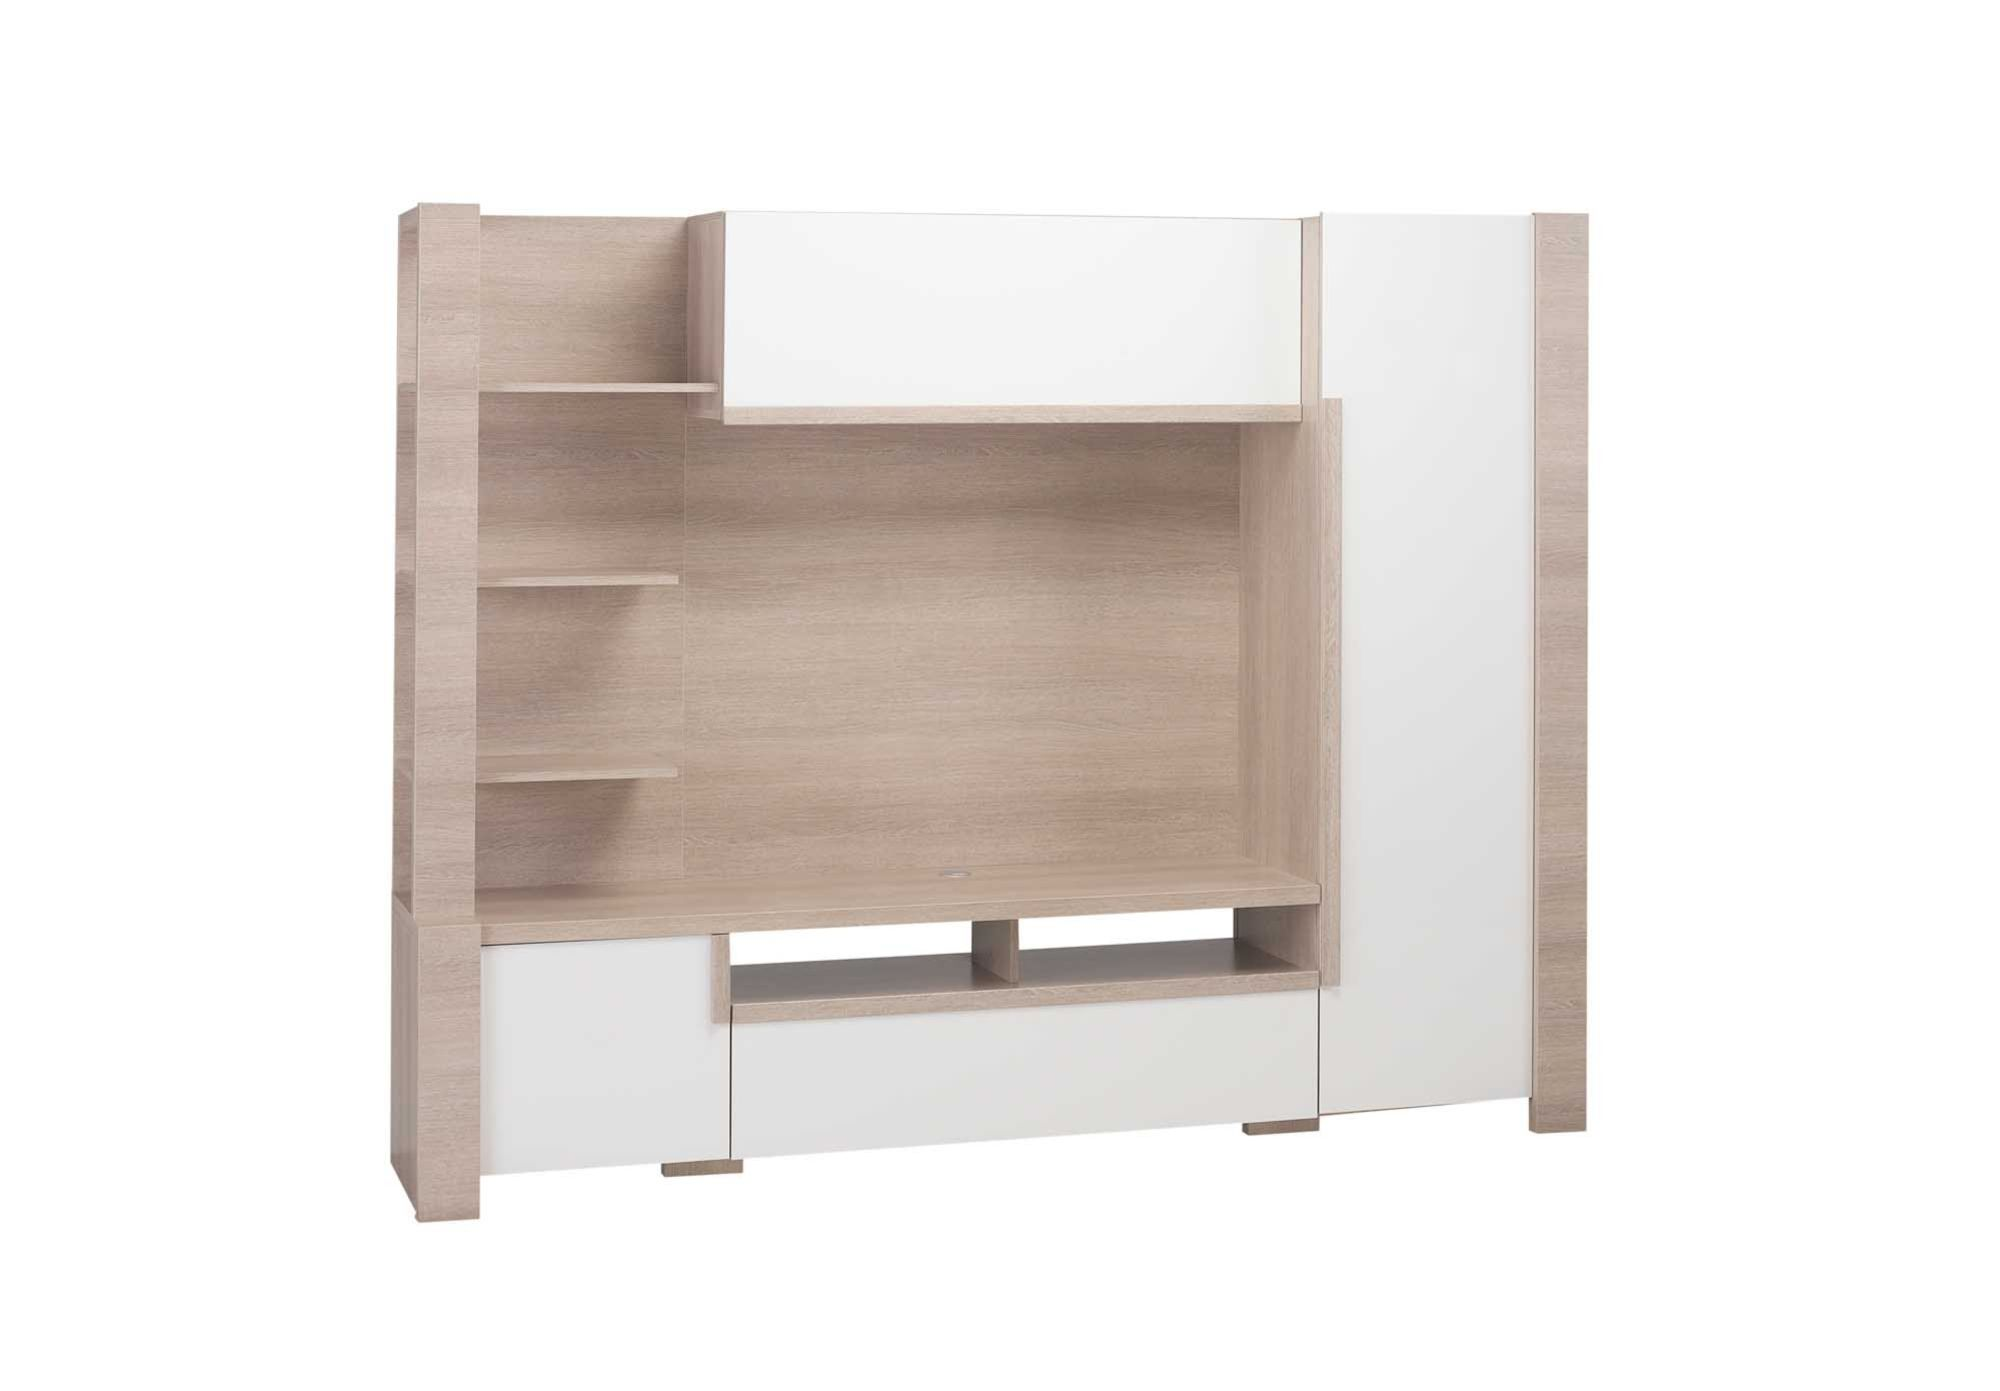 cabinet storage full living room concept solutionsikea ikea unfinished cabinets of staggering image size